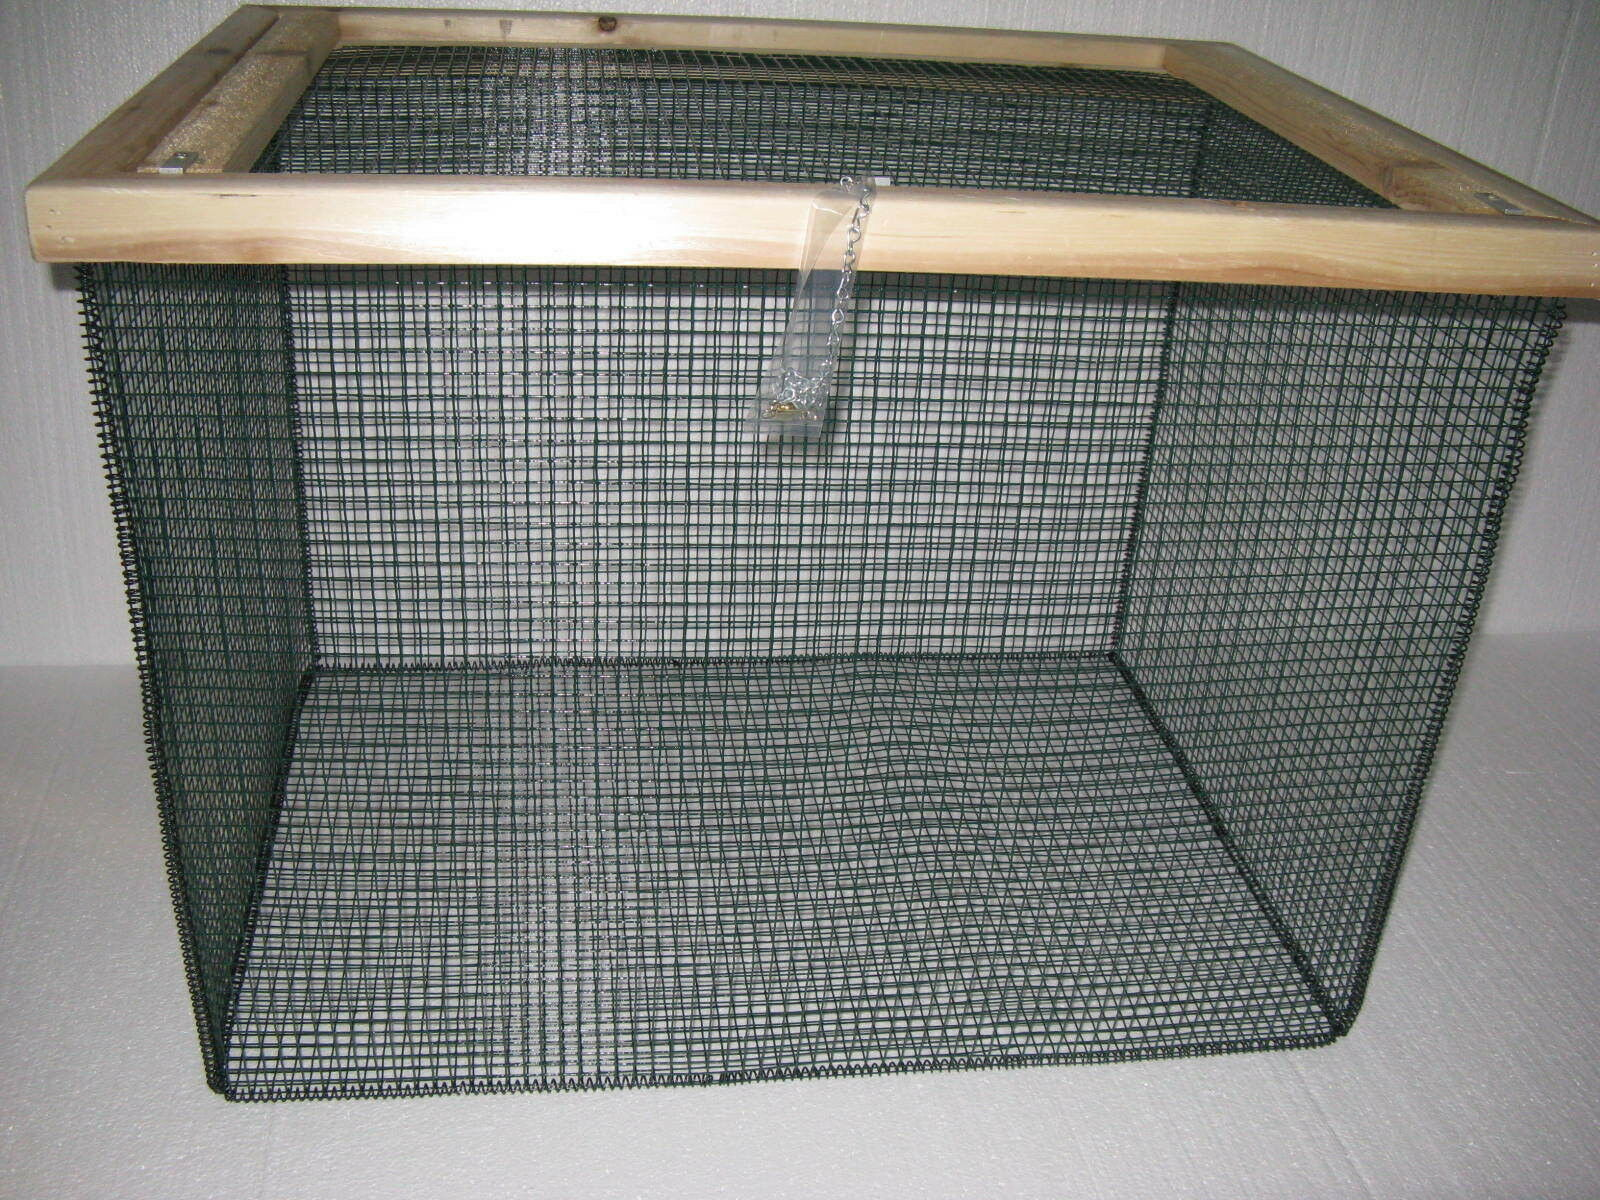 3 ft. BEST Floating Live Fish Well Basket with 1 2  wire (Keep Fish Alive) Cage